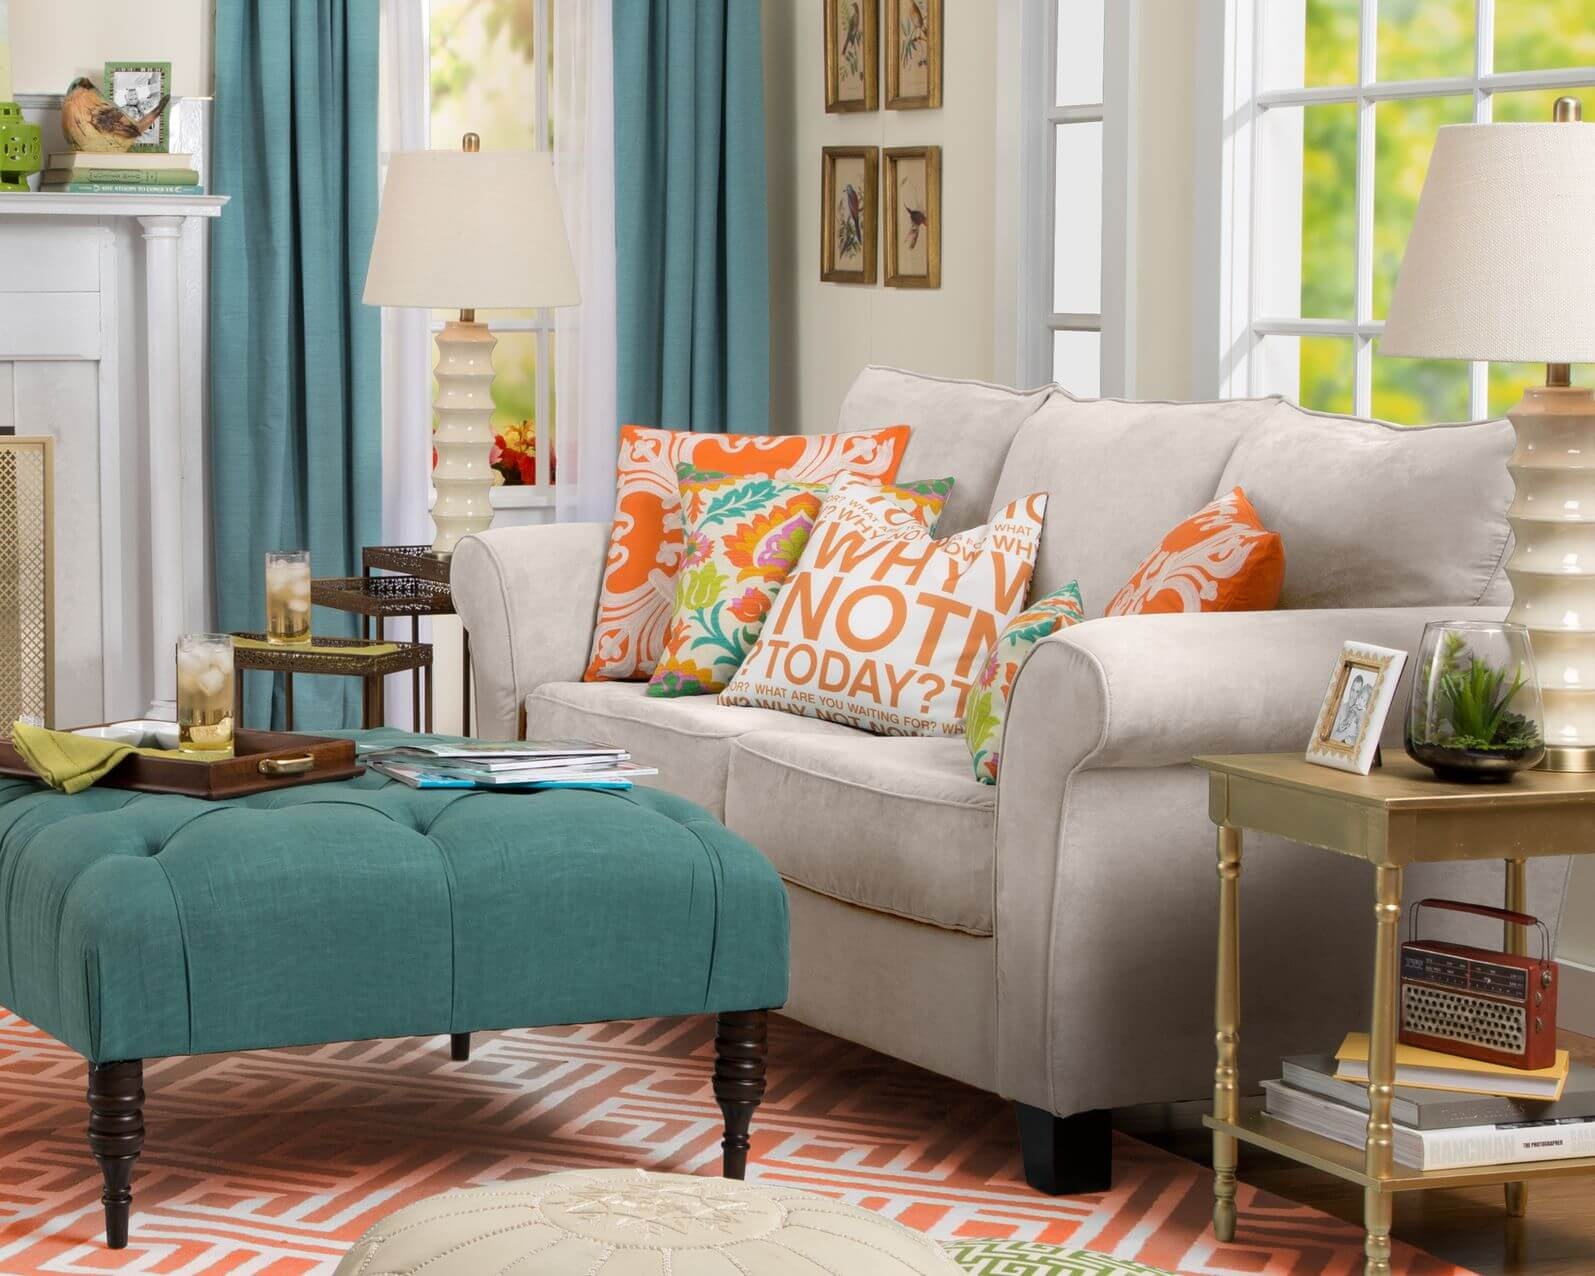 bright contrasting color patterns throughout this living room featuring neutral toned sofa next to